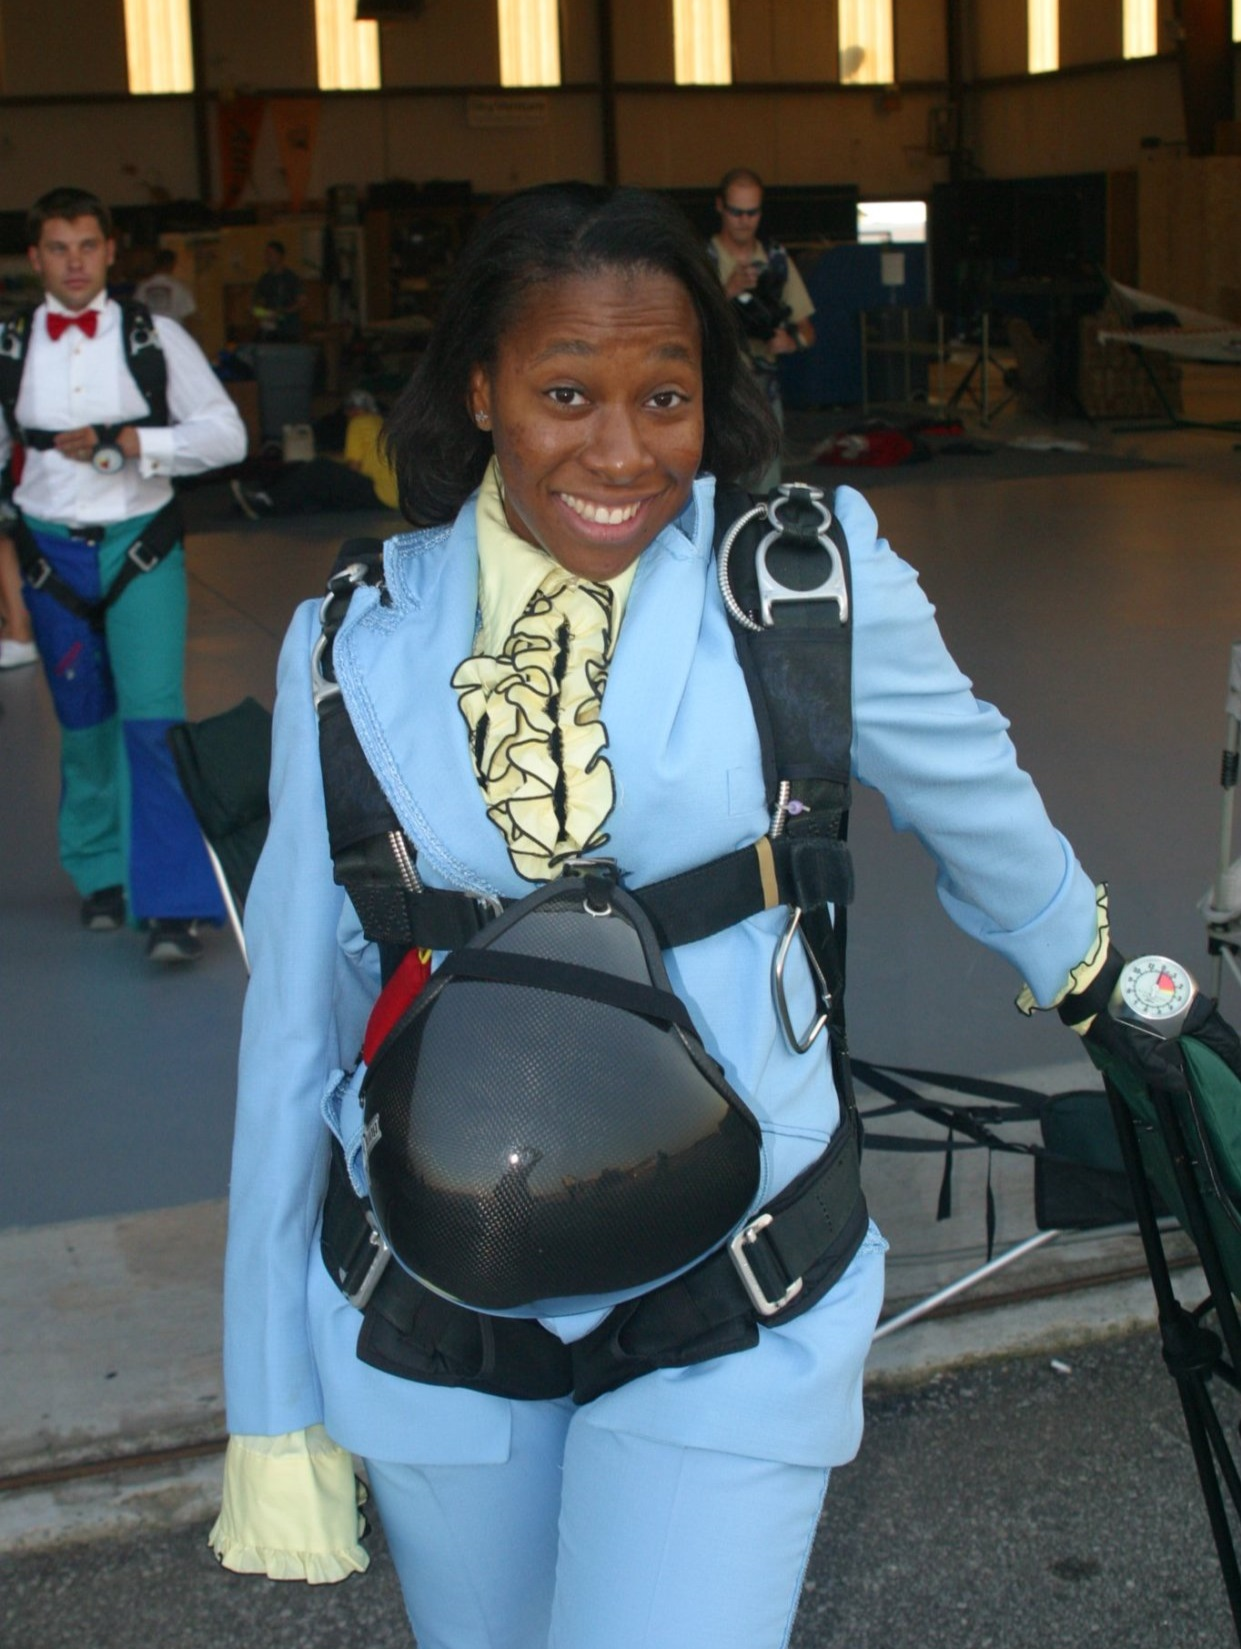 24-year-old Sharon poses for a photo during a Casino Jump at Skydive Atlanta in 2003.  Photo courtesy: Sharon Calhoun